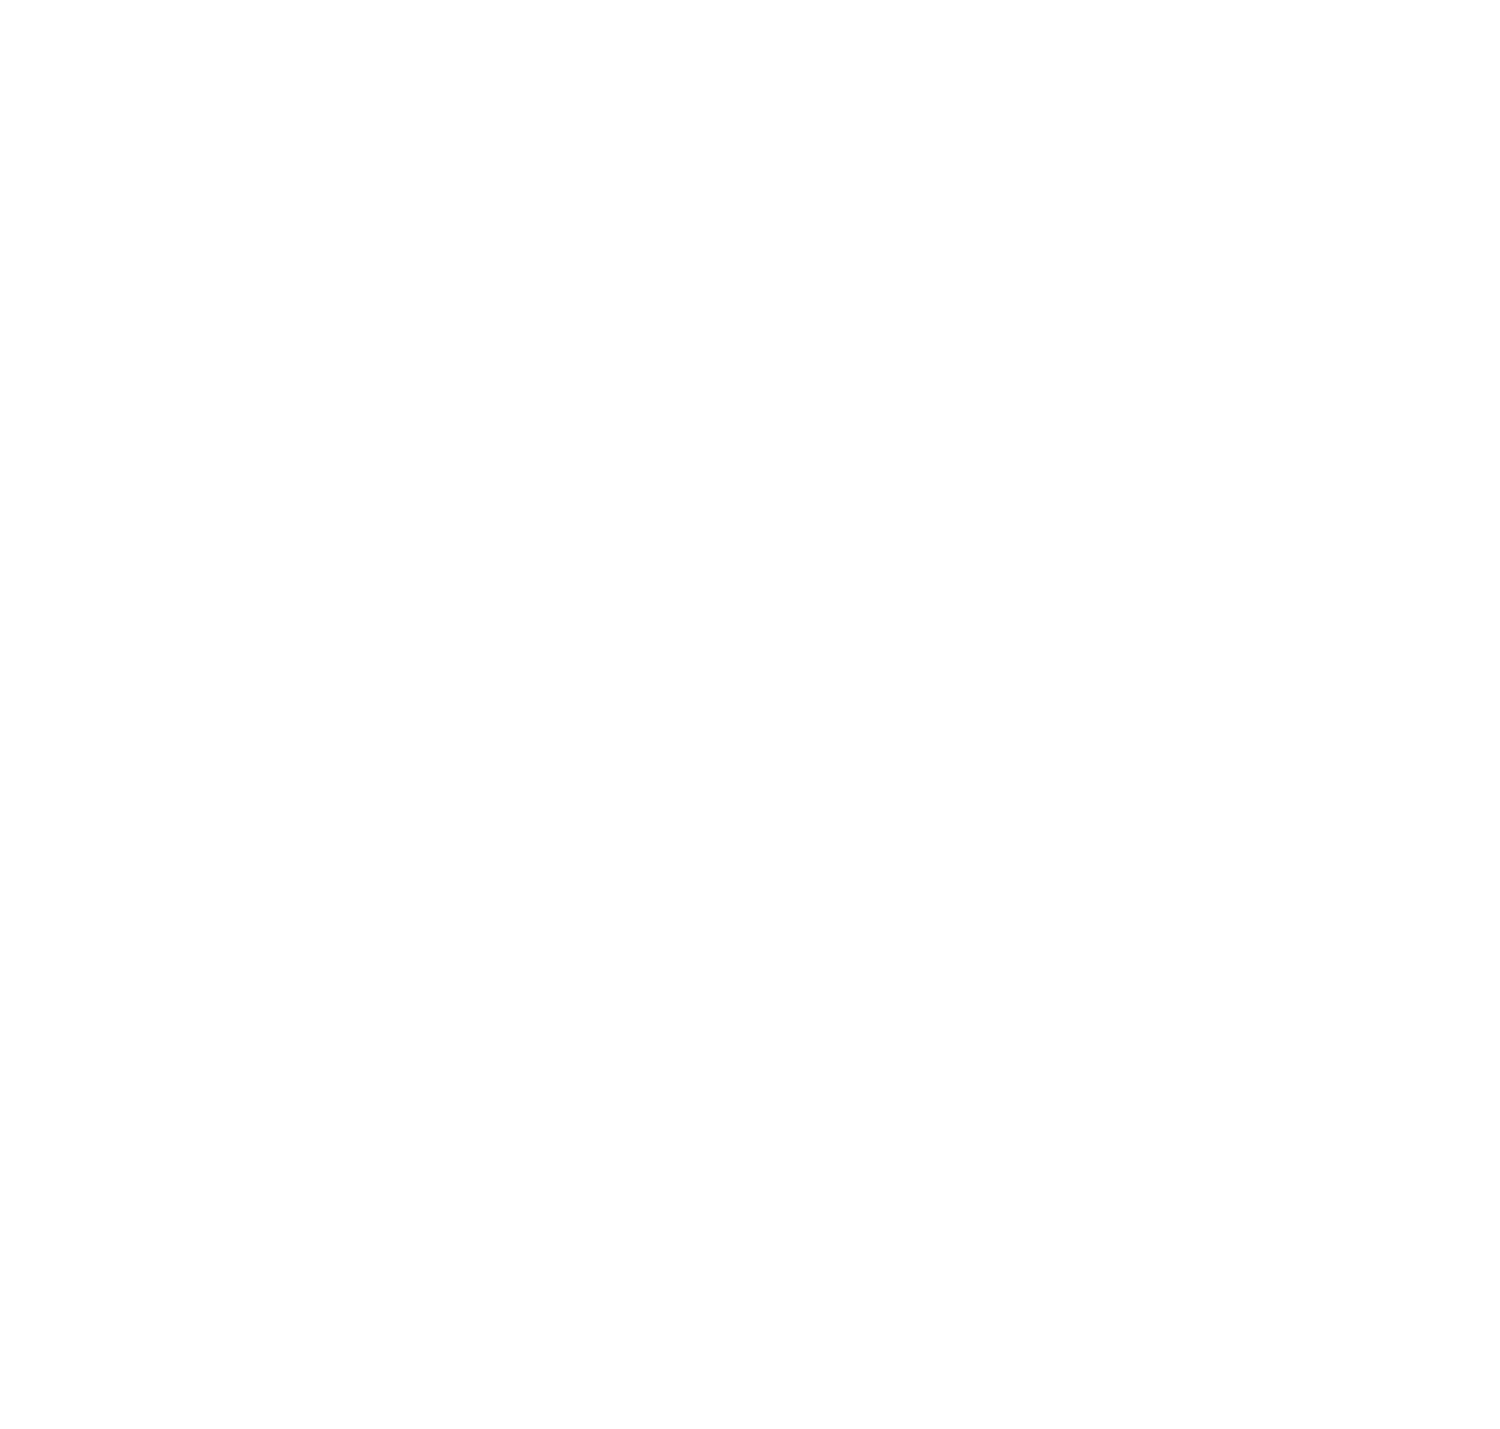 Harmonious Return